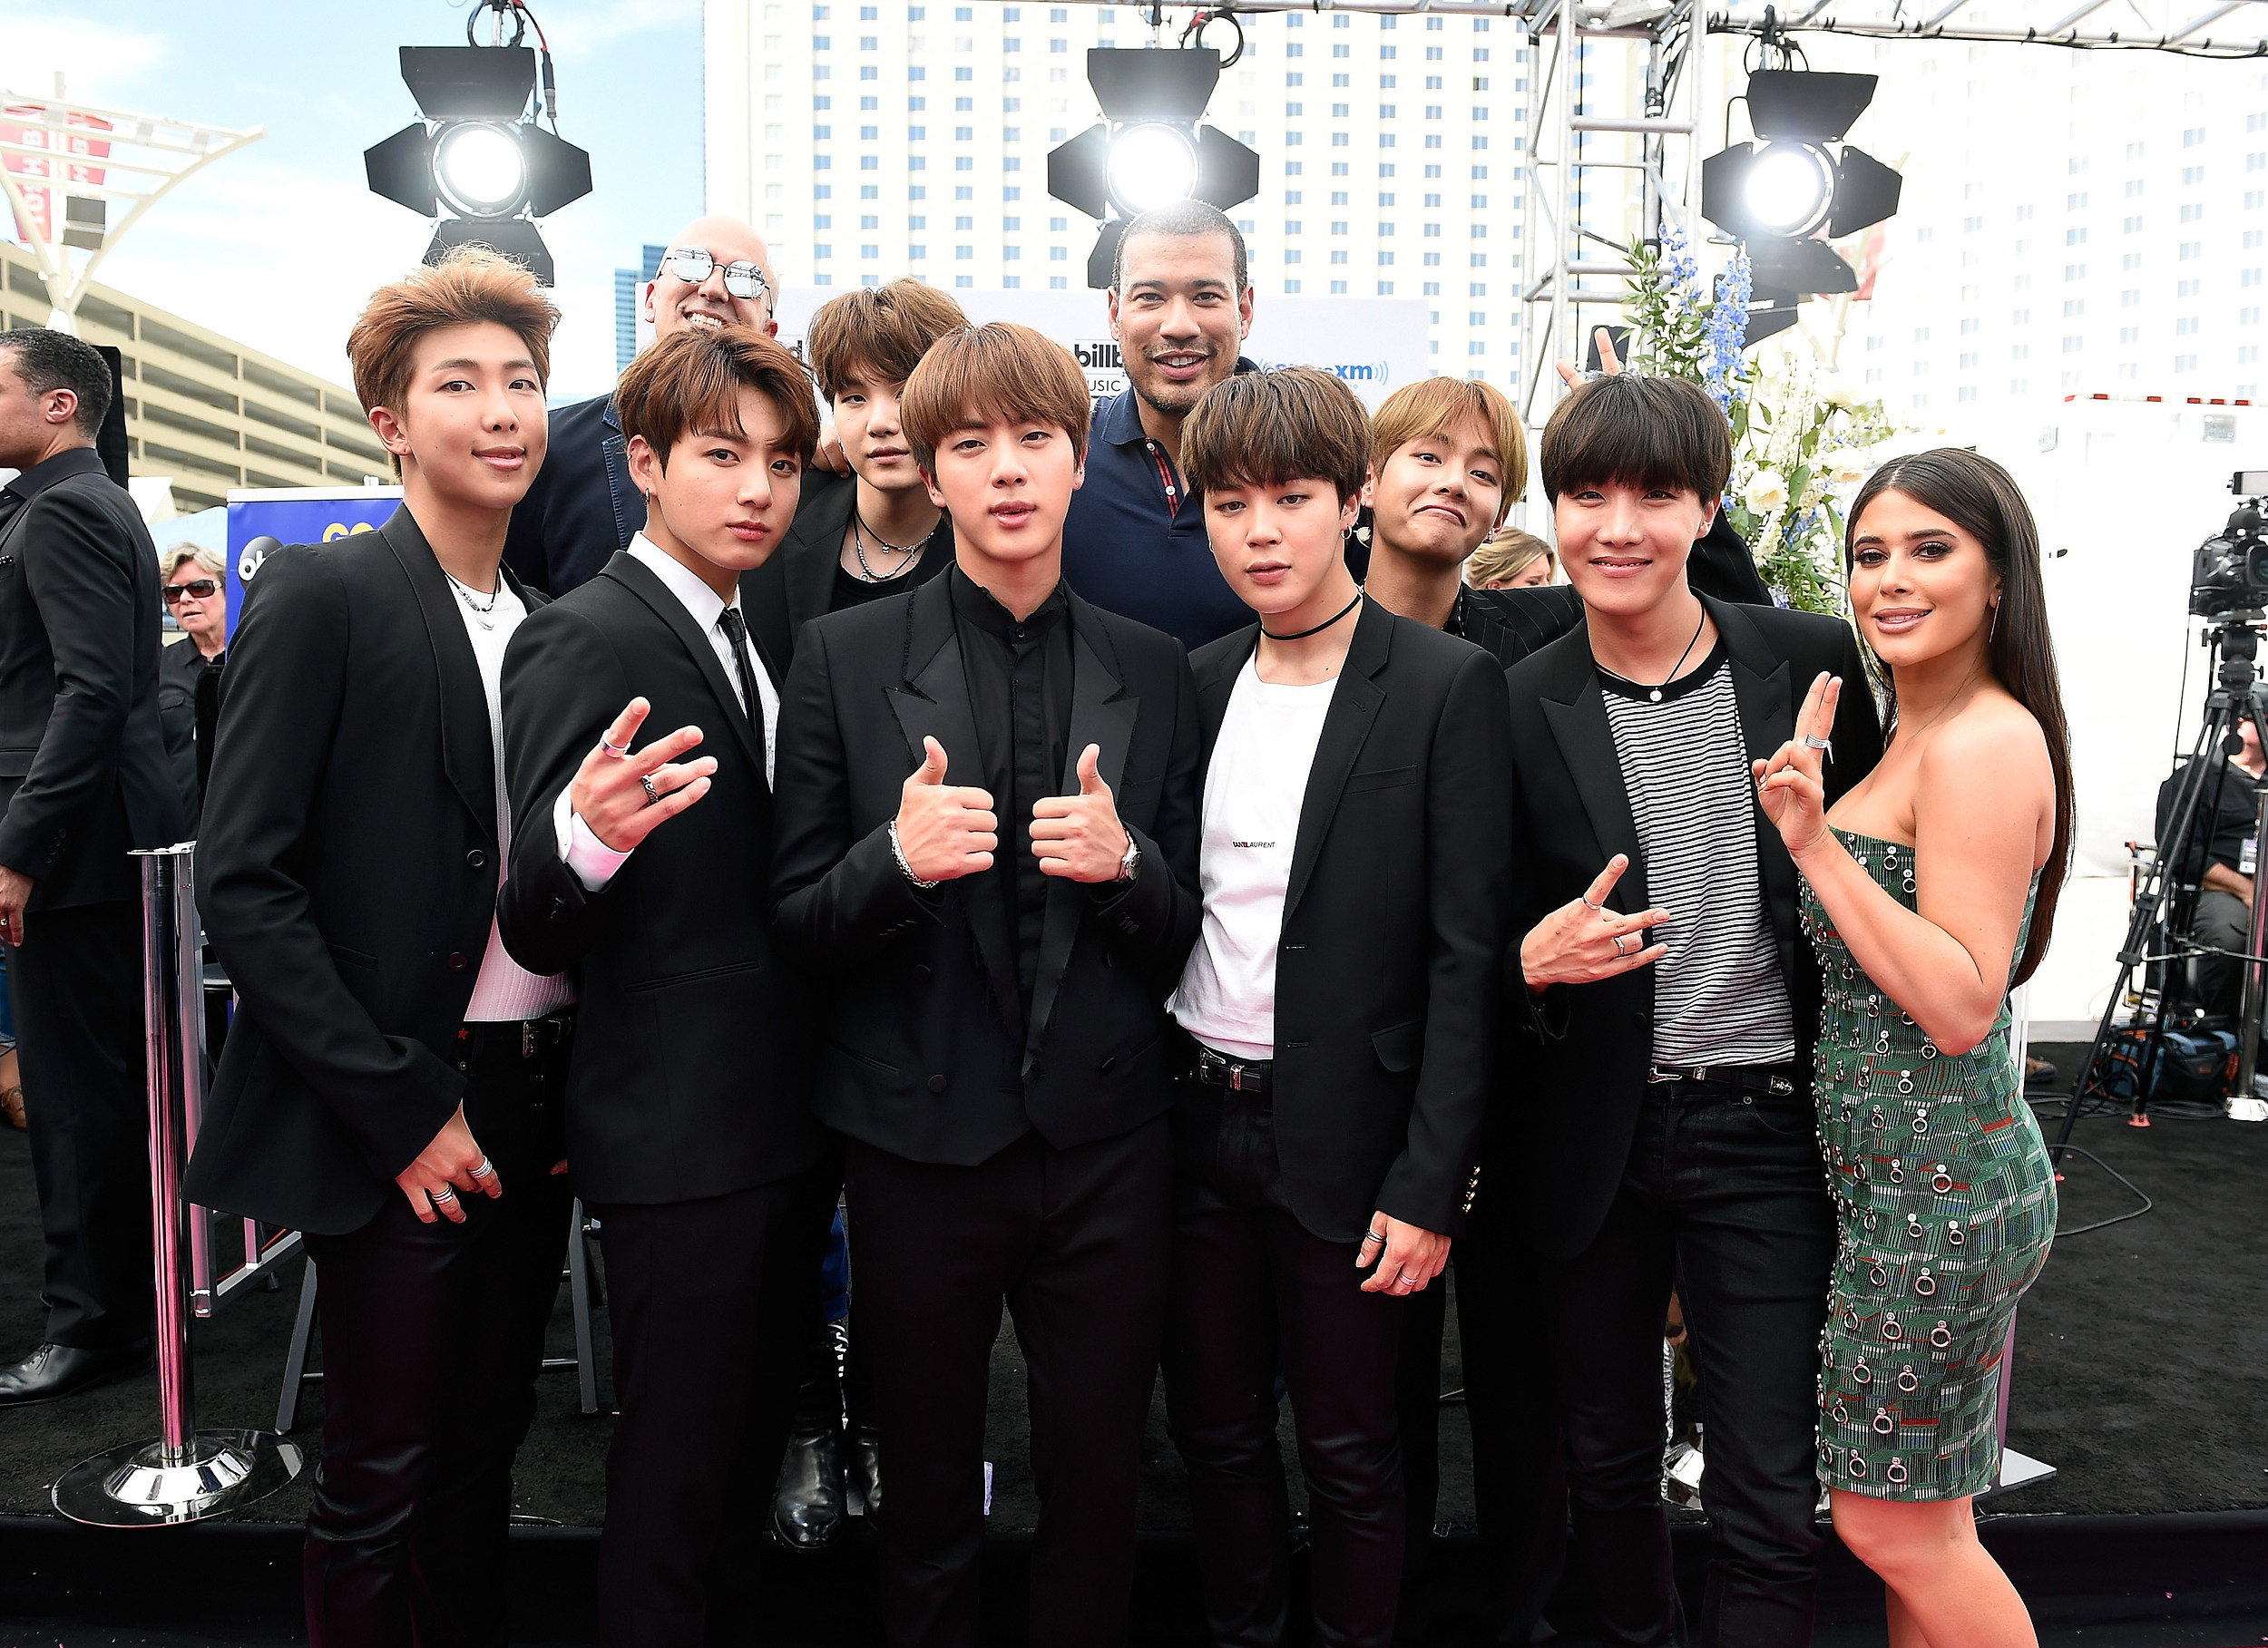 BTS Member Jin Goes Viral During 2017 BBMAs for Being Really Hot (Again)